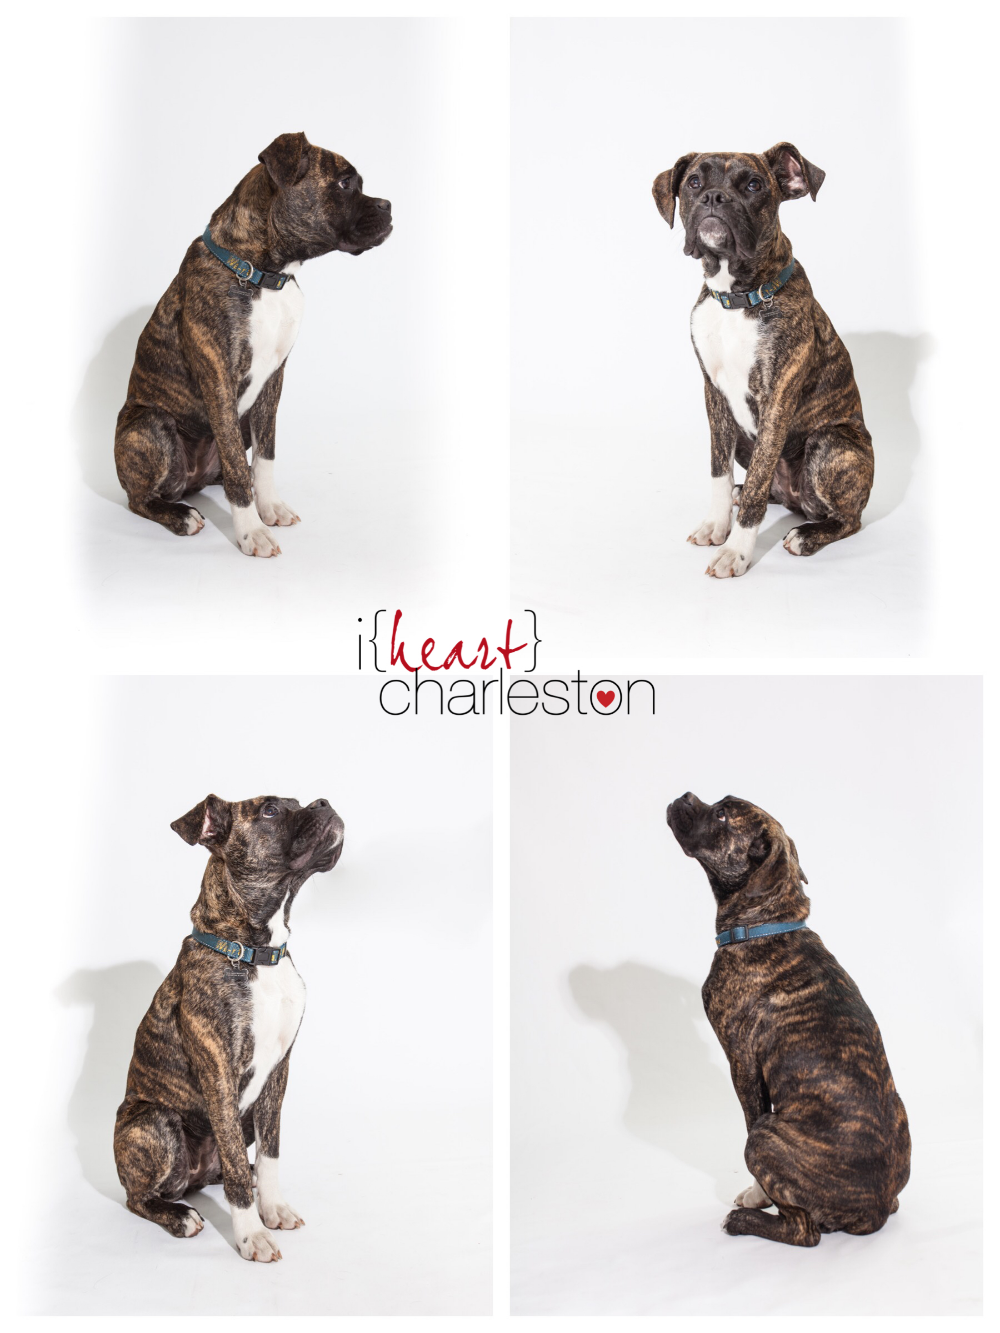 iheartcharleston family pet photos march 2016